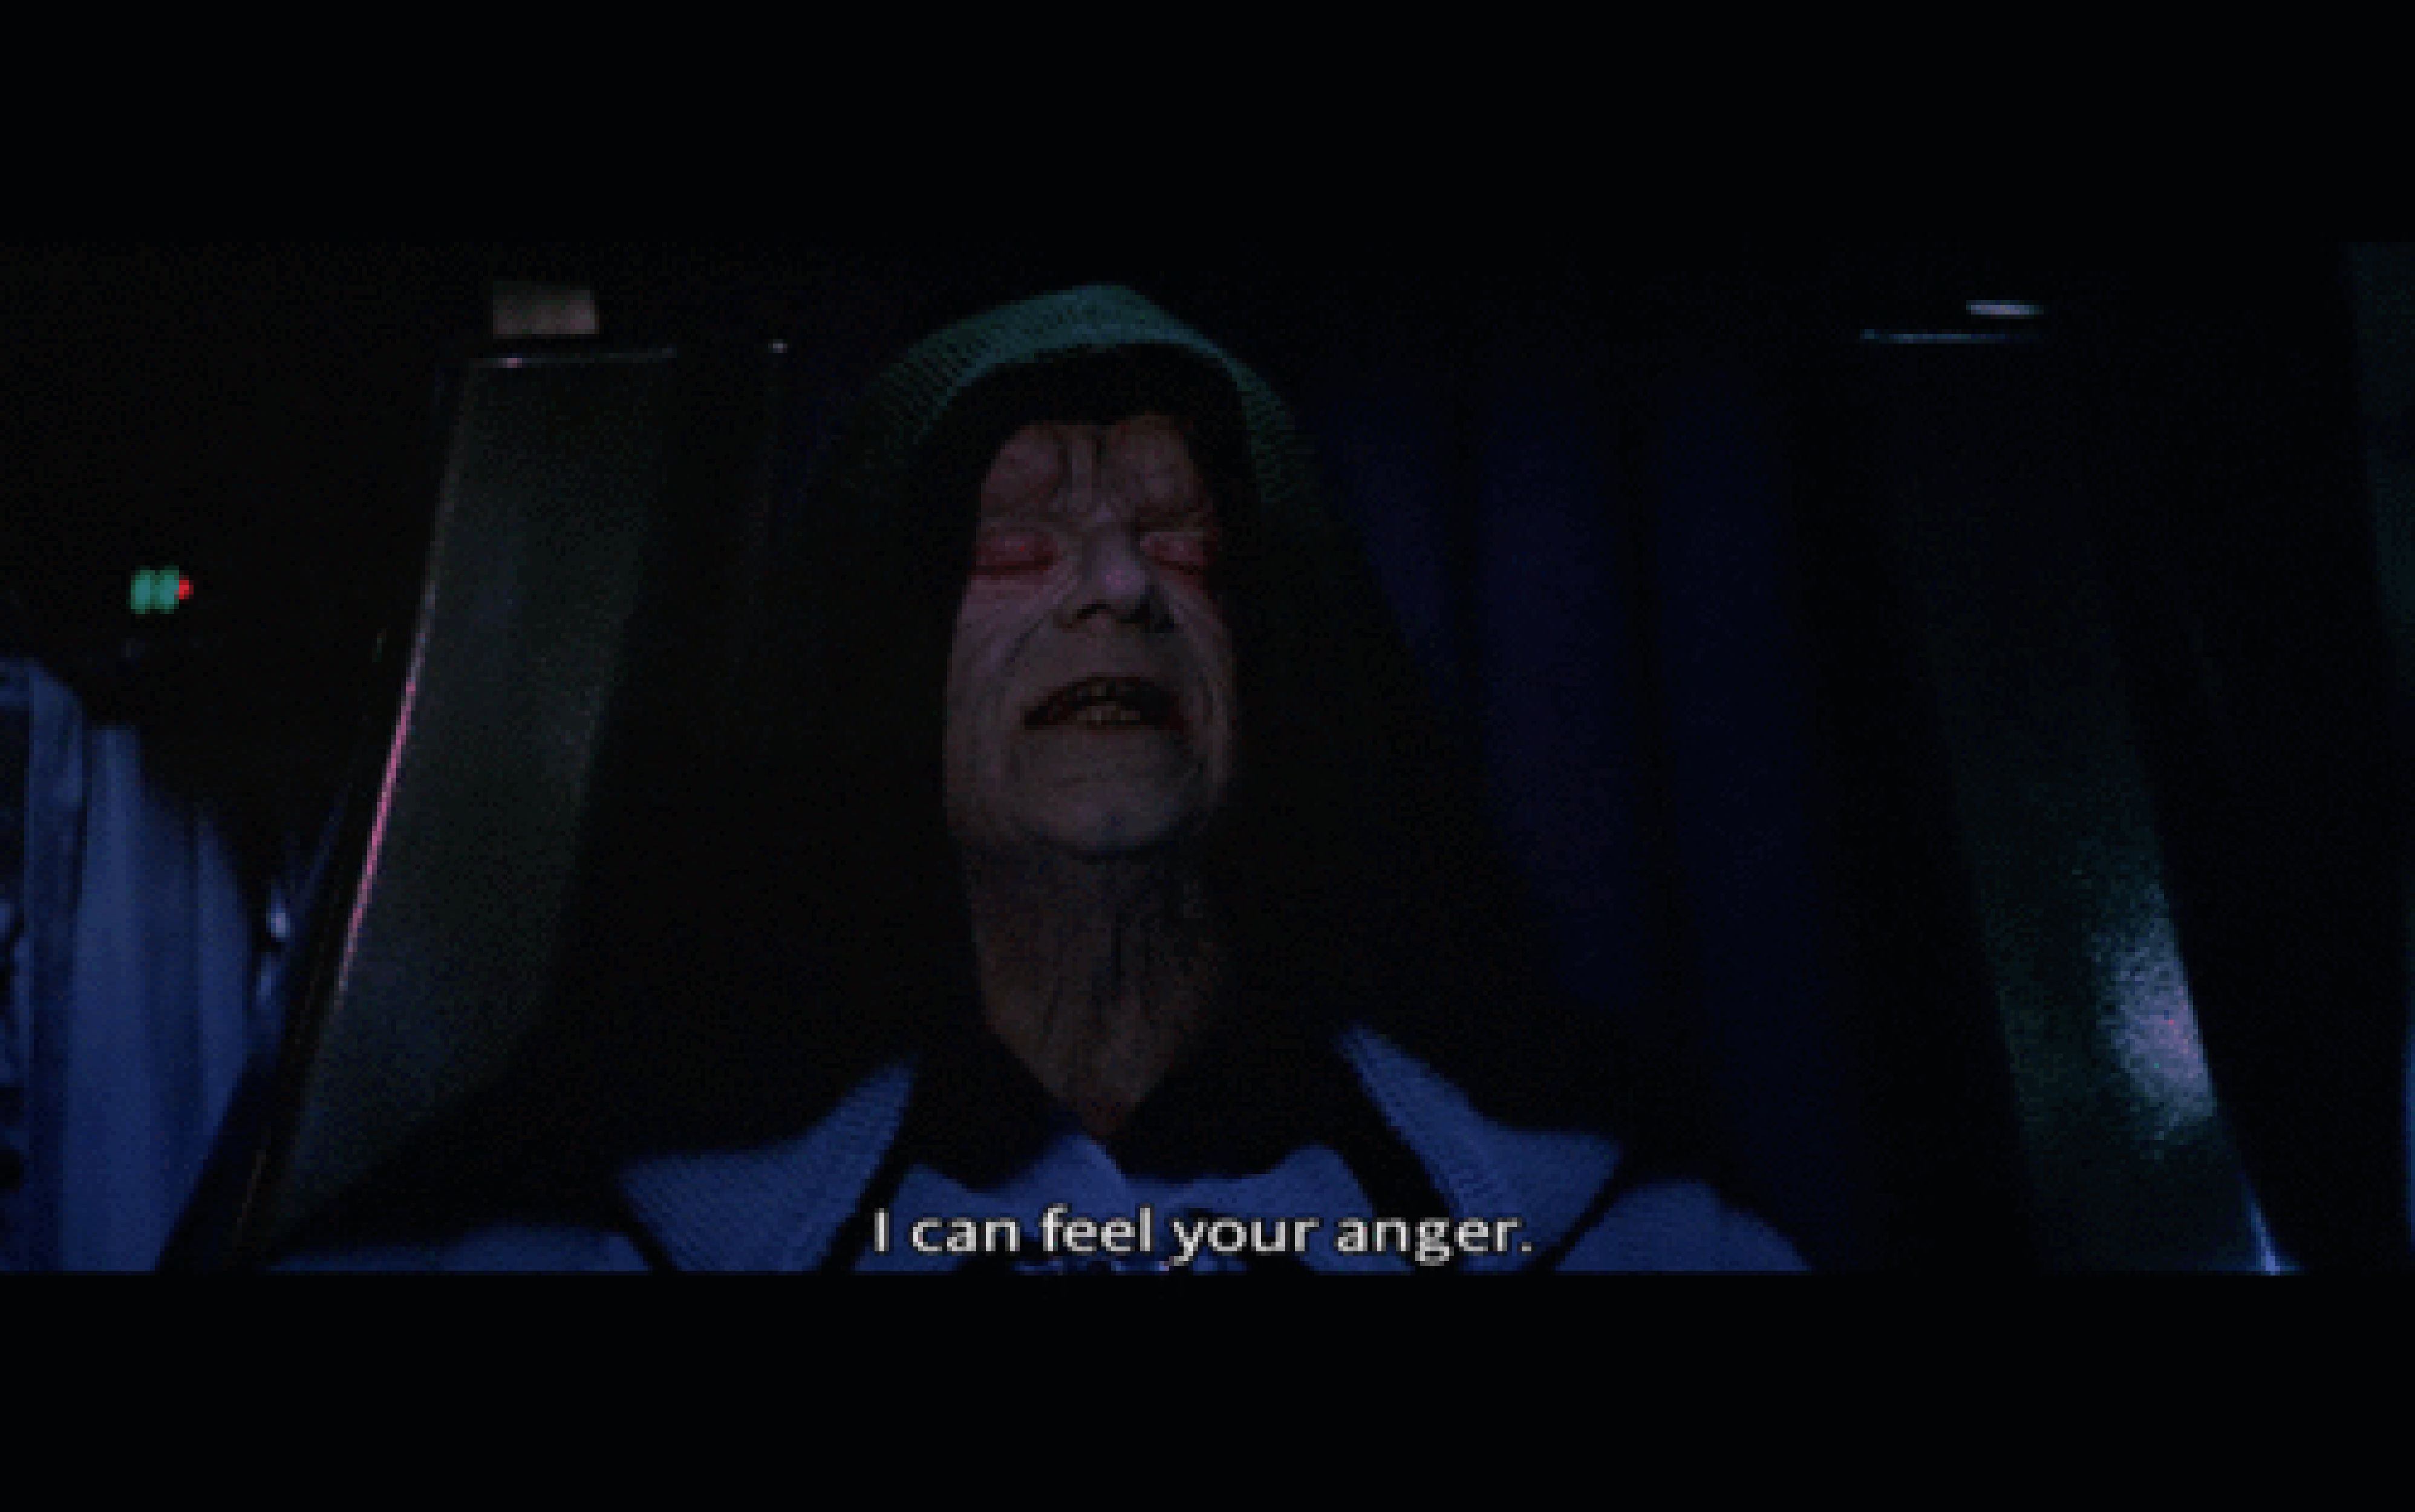 I can feel your anger.